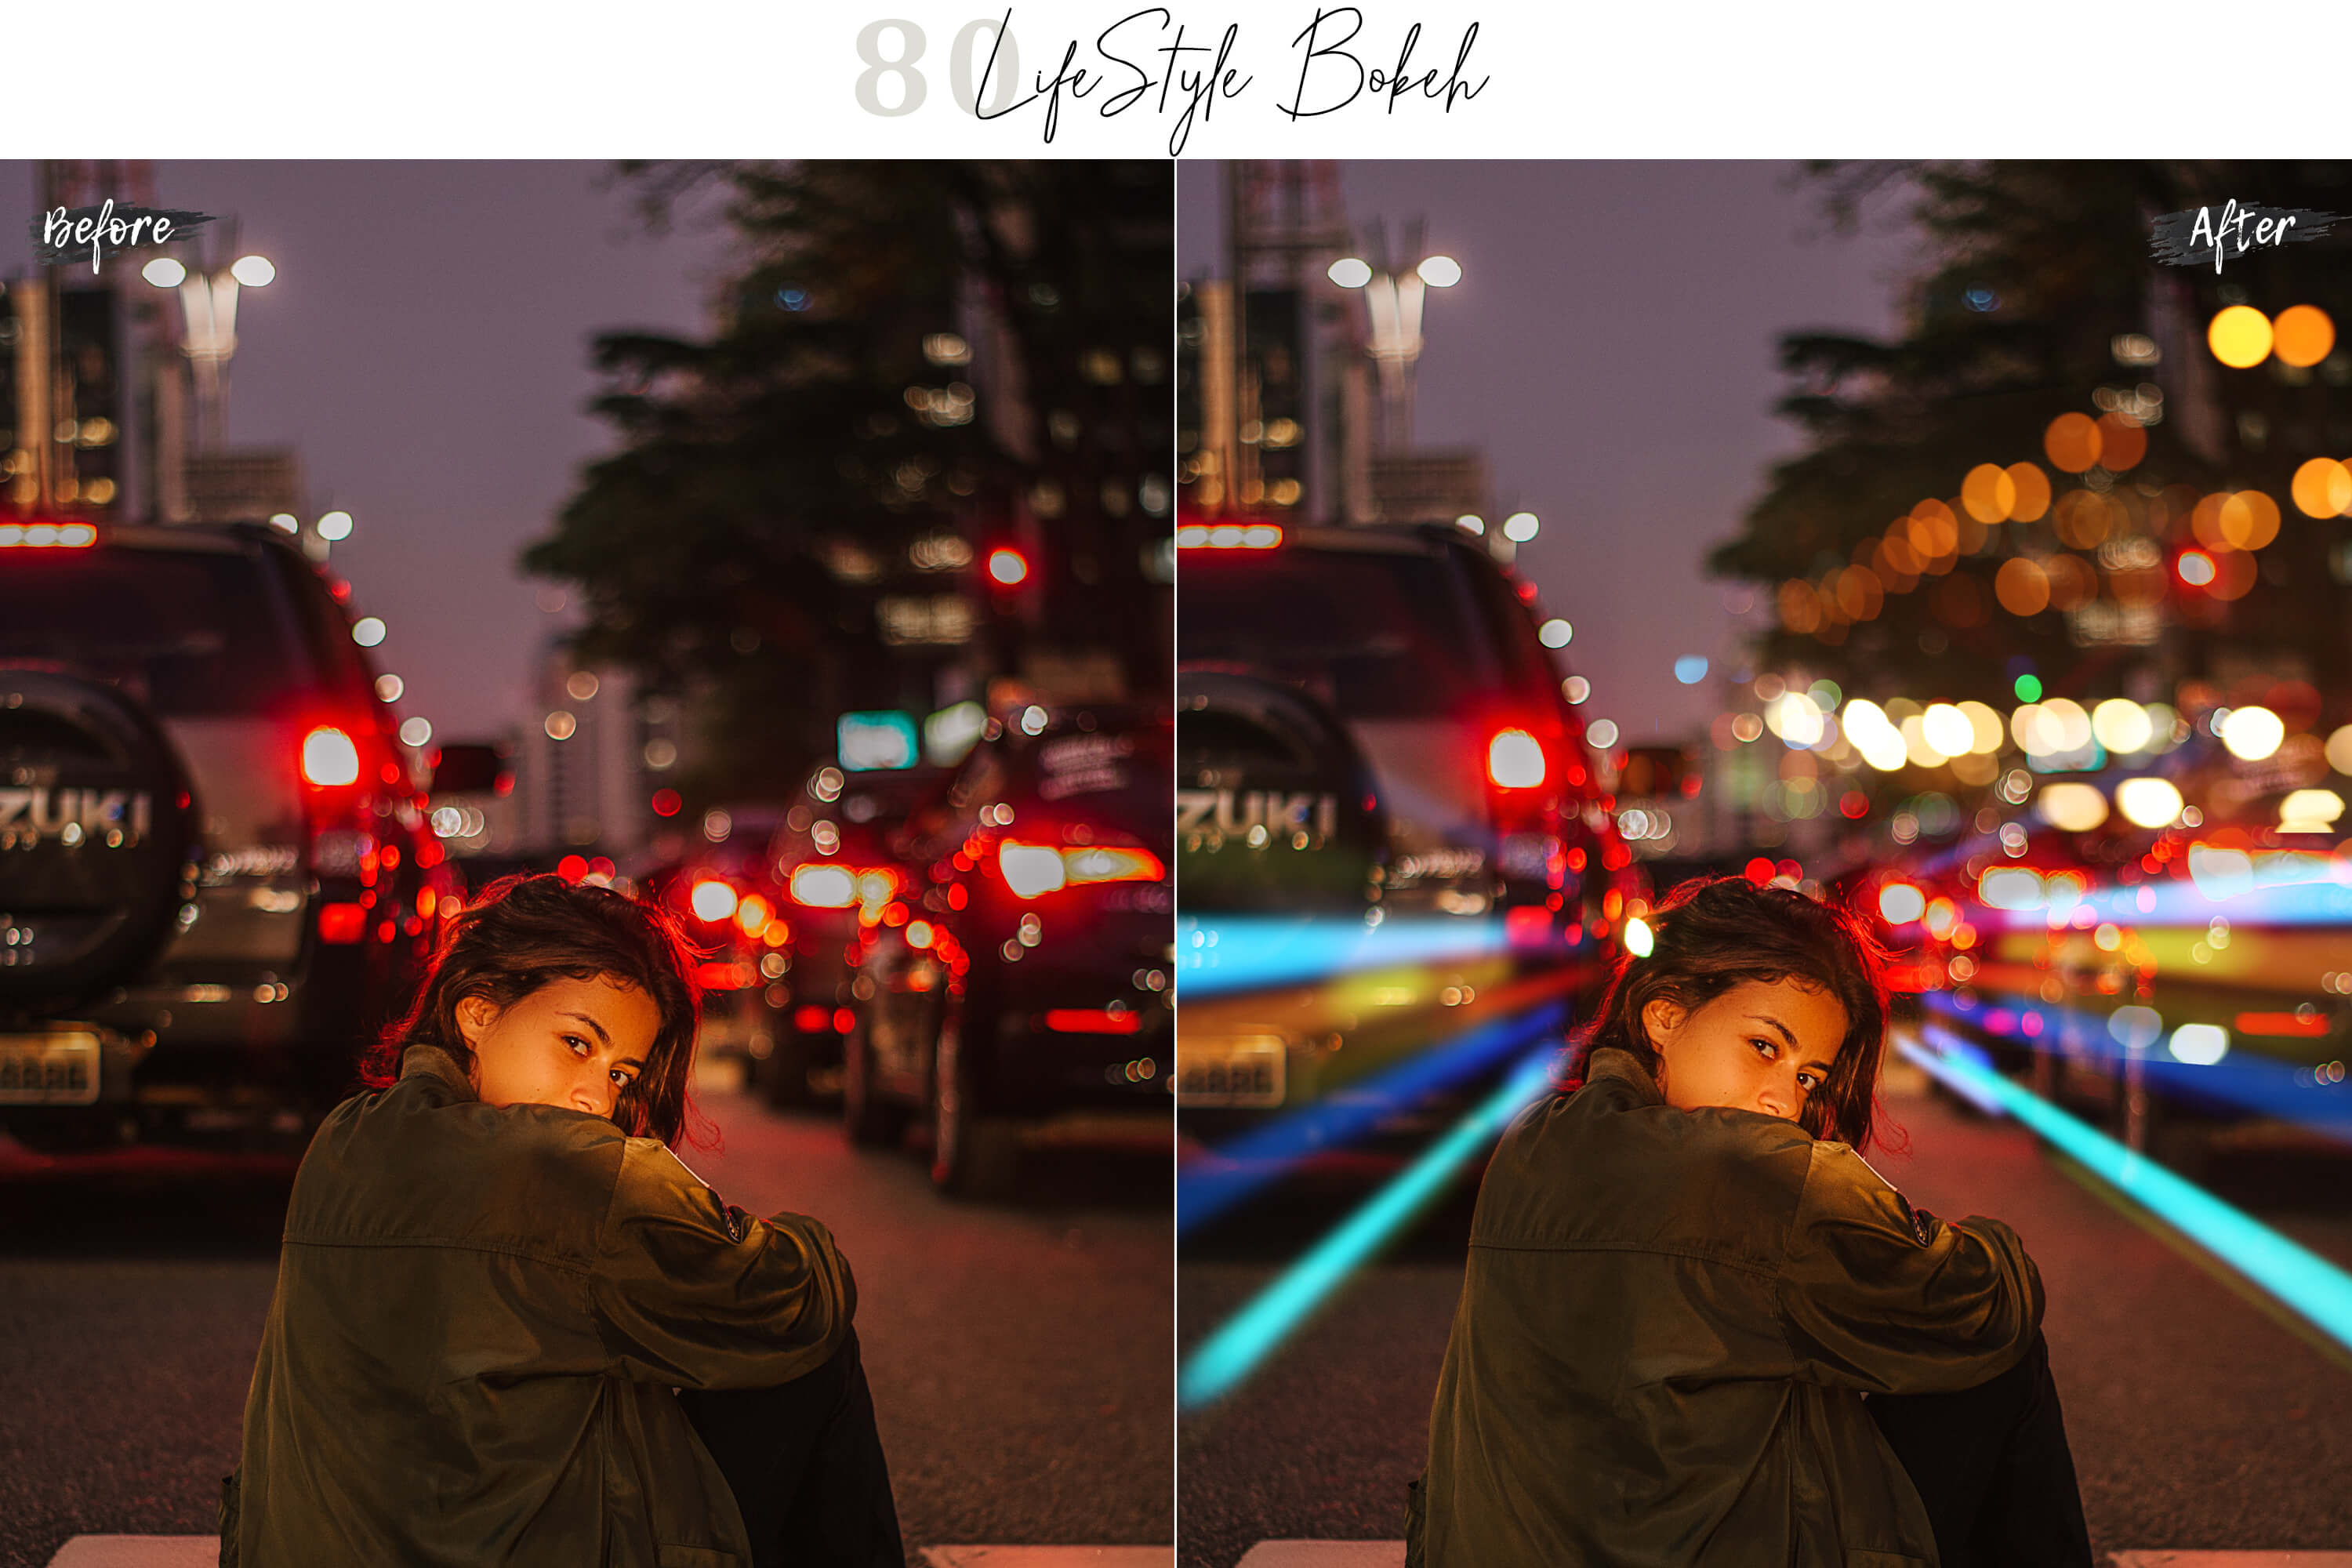 80 Life Style Bokeh Pack 02 lights Effect Photo Overlays example image 4